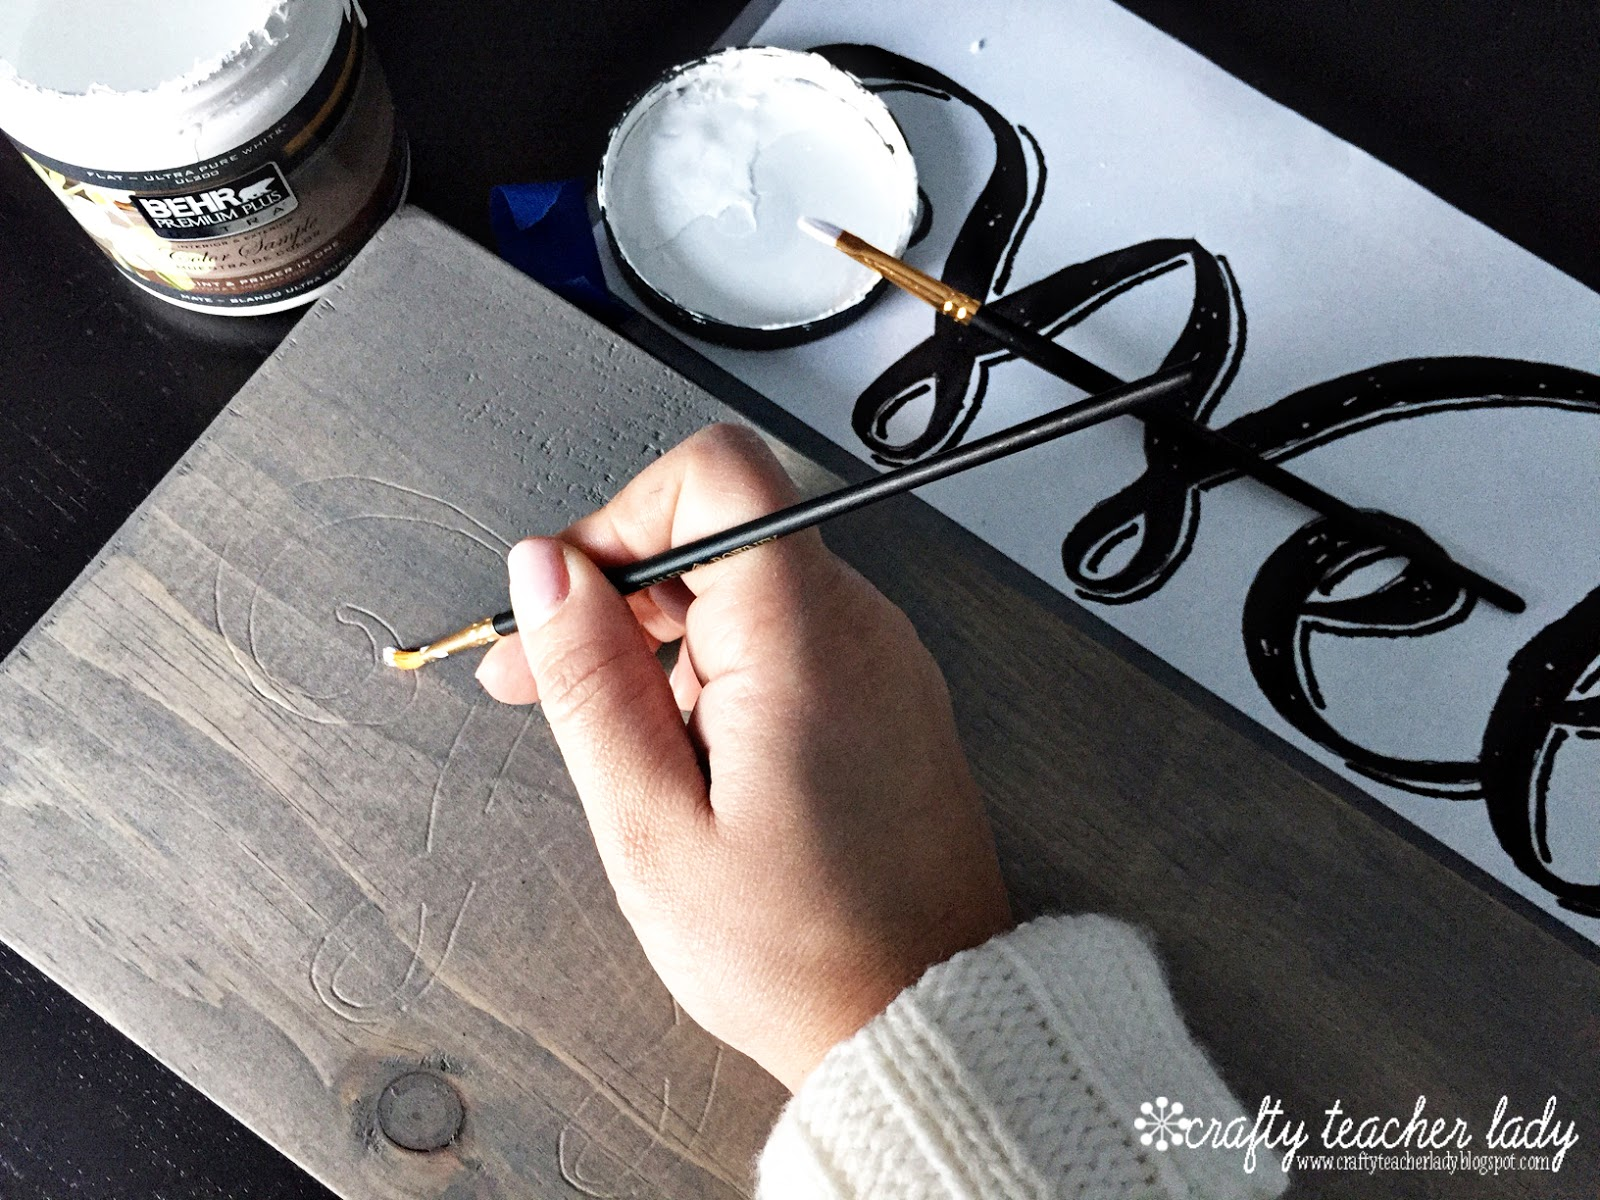 Crafty Teacher Lady Diy Rustic Wood Sign Tutorial